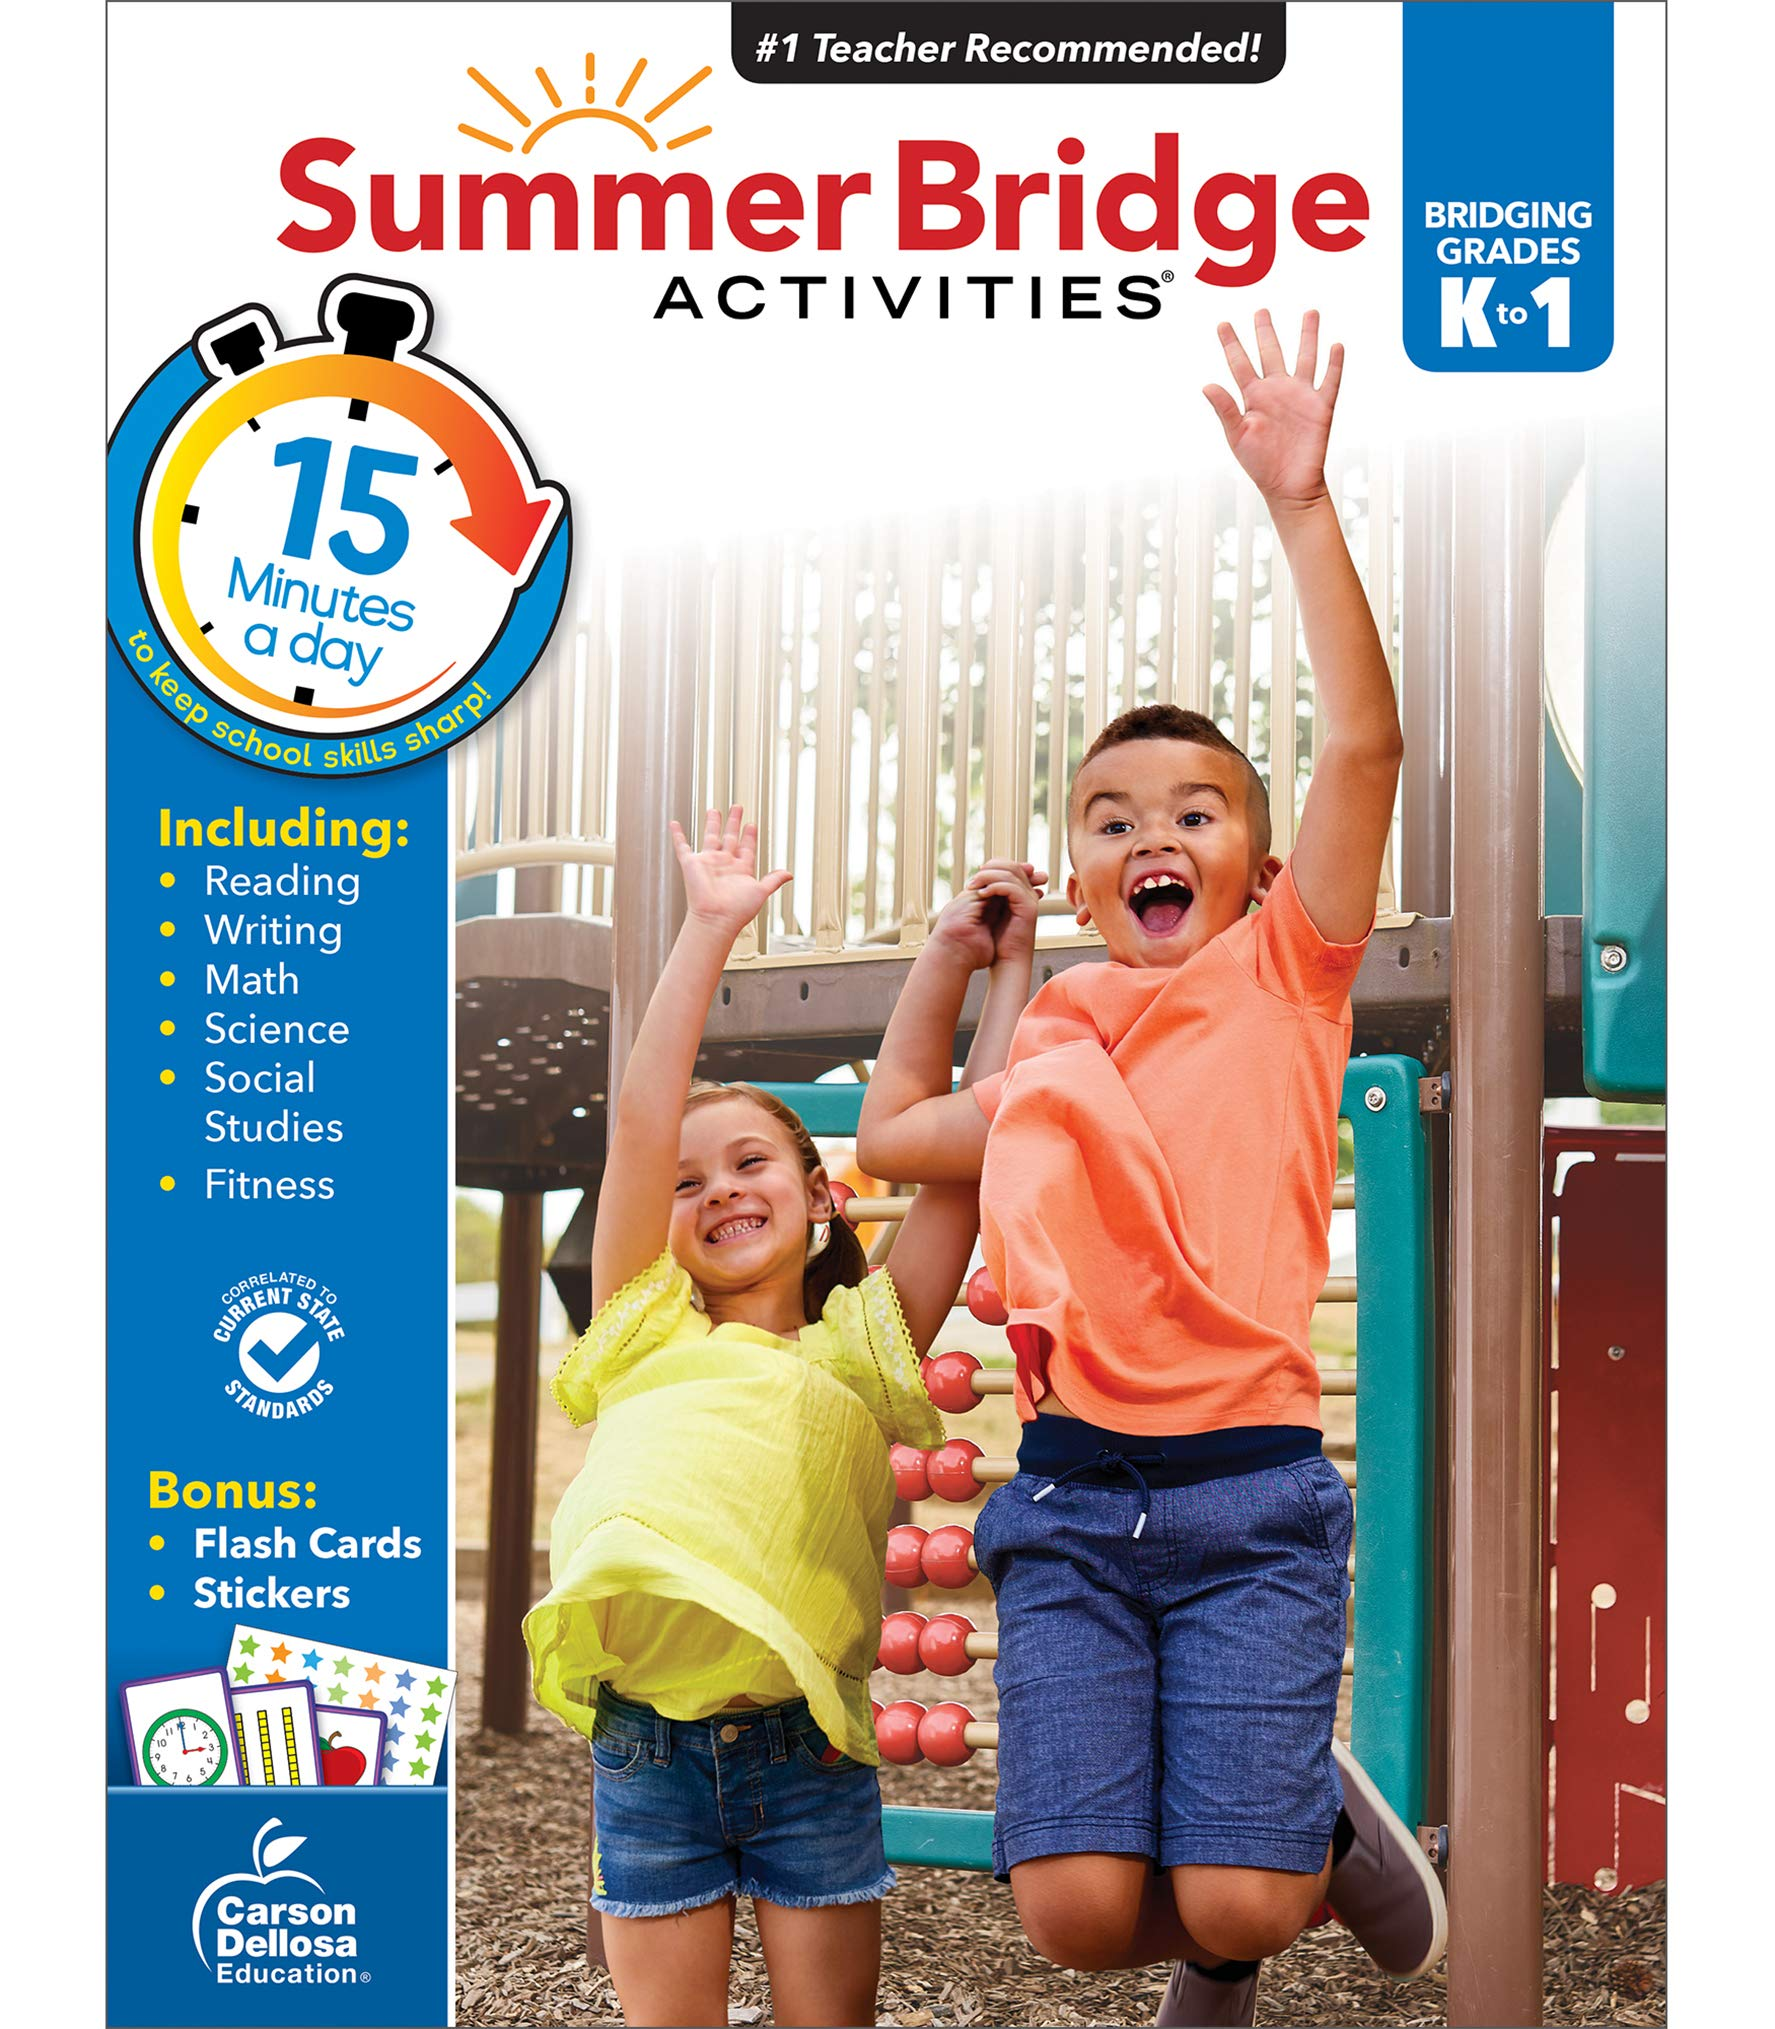 Summer Bridge Activities Workbook—Bridging Grades K to 1 in Just 15 Minutes a Day, Ages 5-6, Reading, Writing, Math, Science, Social Studies, Summer Learning Activity Book With Flash Cards (160 pgs)